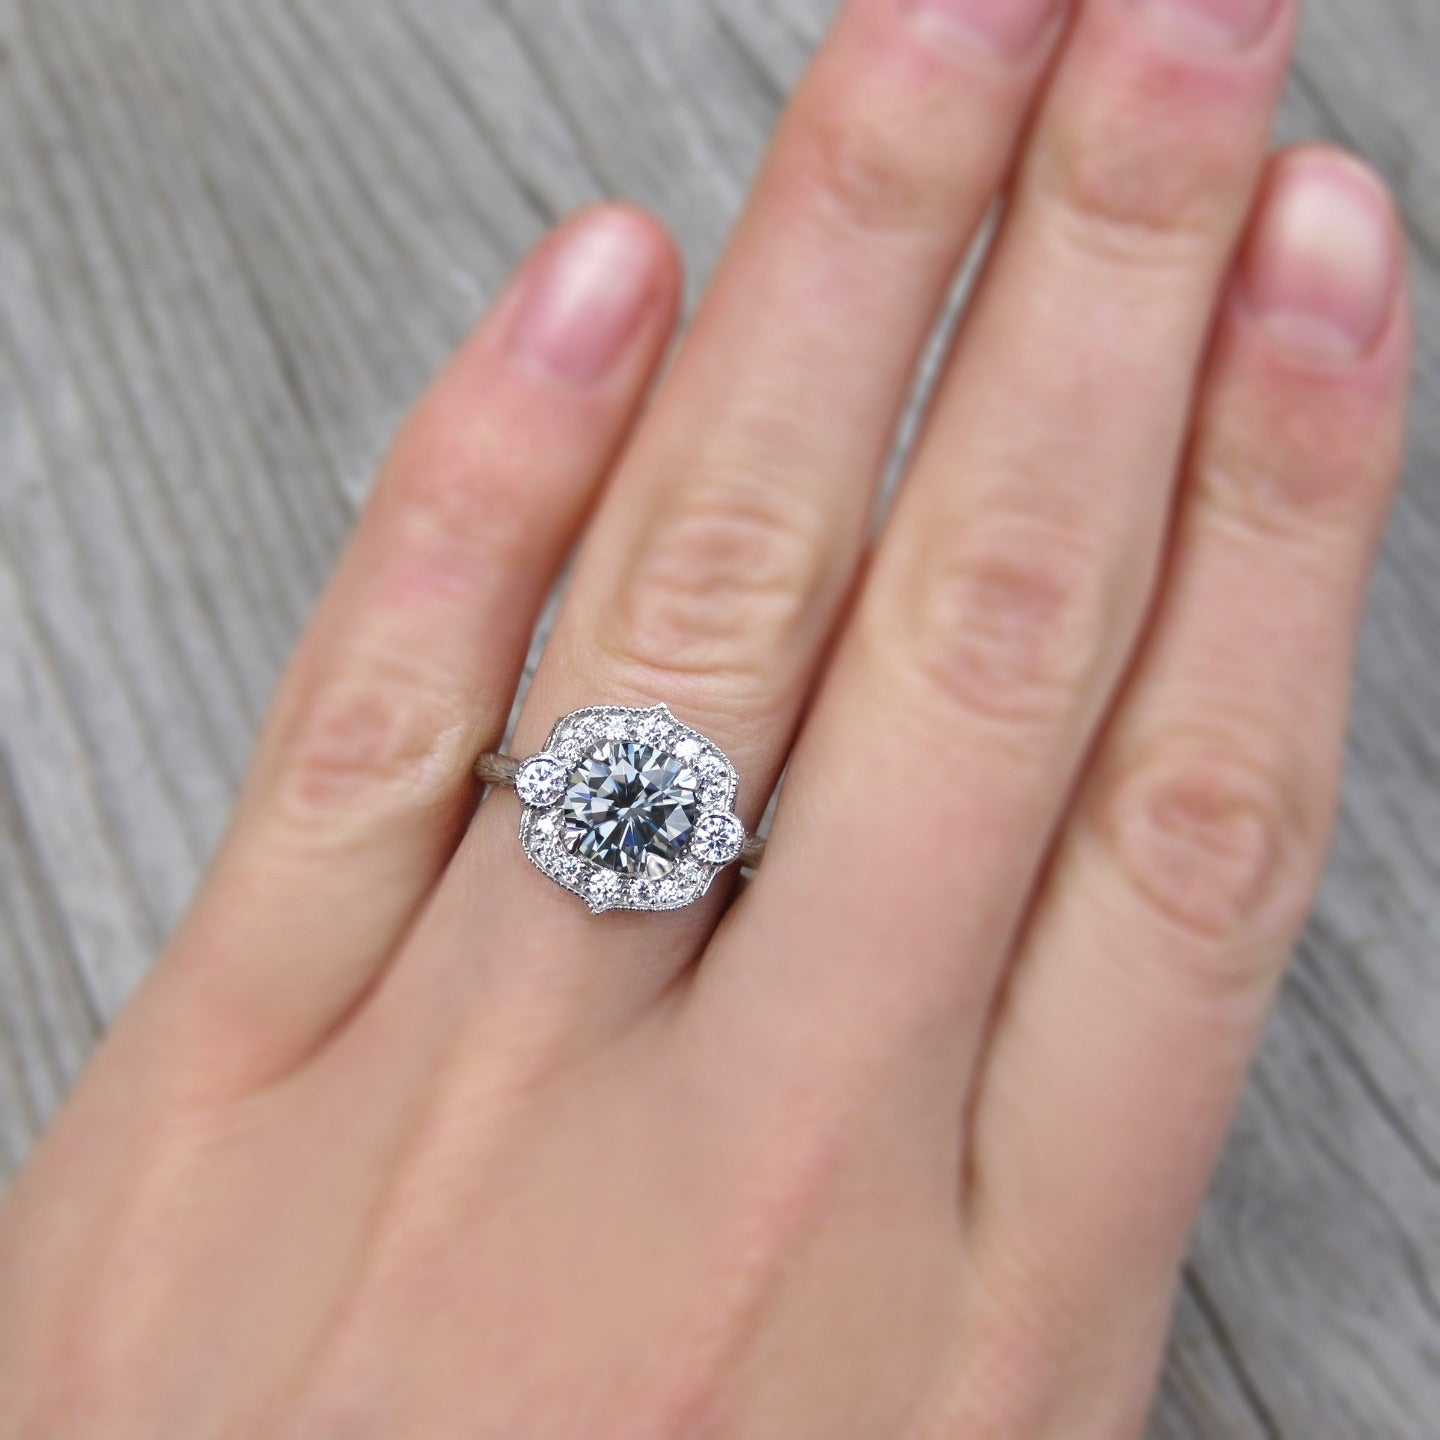 Grey Iconic Moissanite Engagement Ring & Diamond Halo (1.5ct ...